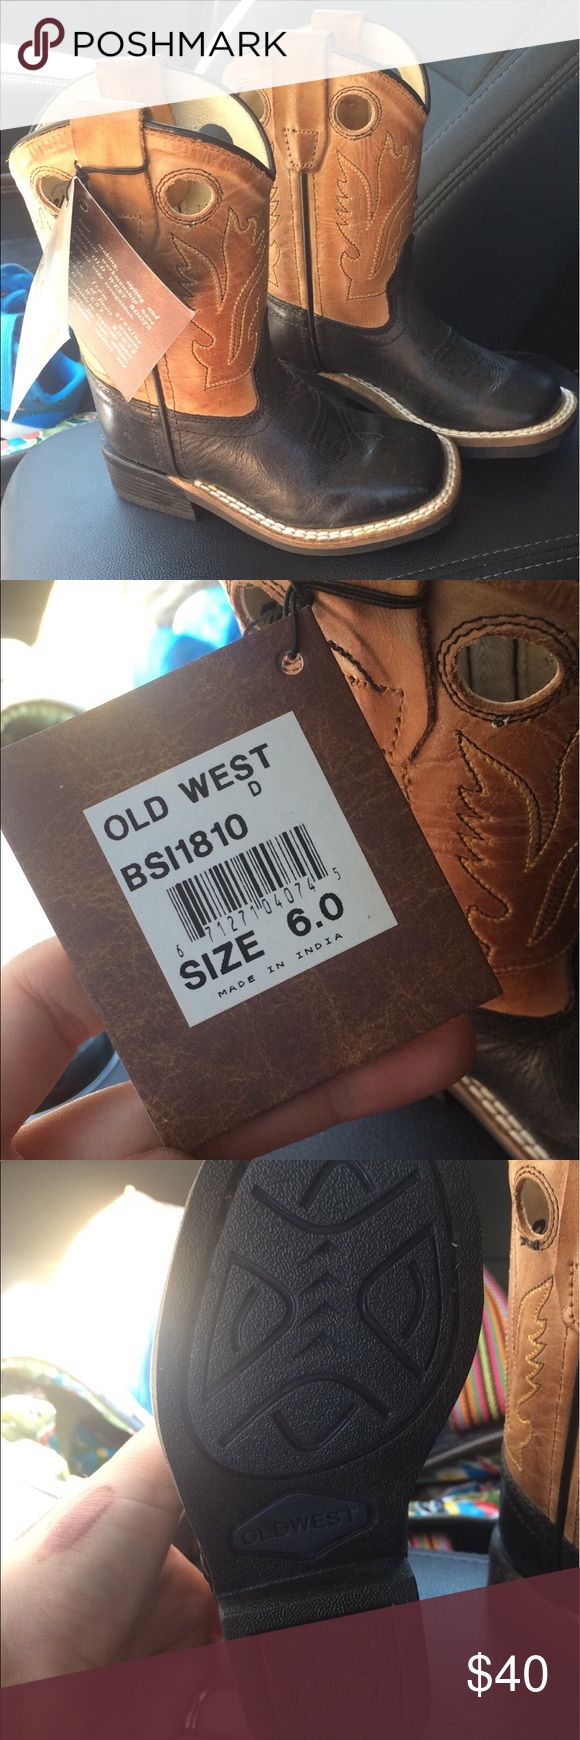 Toddler boy cowboy boots New with tags size 6 toddler cowboy boots old west Shoes Boots